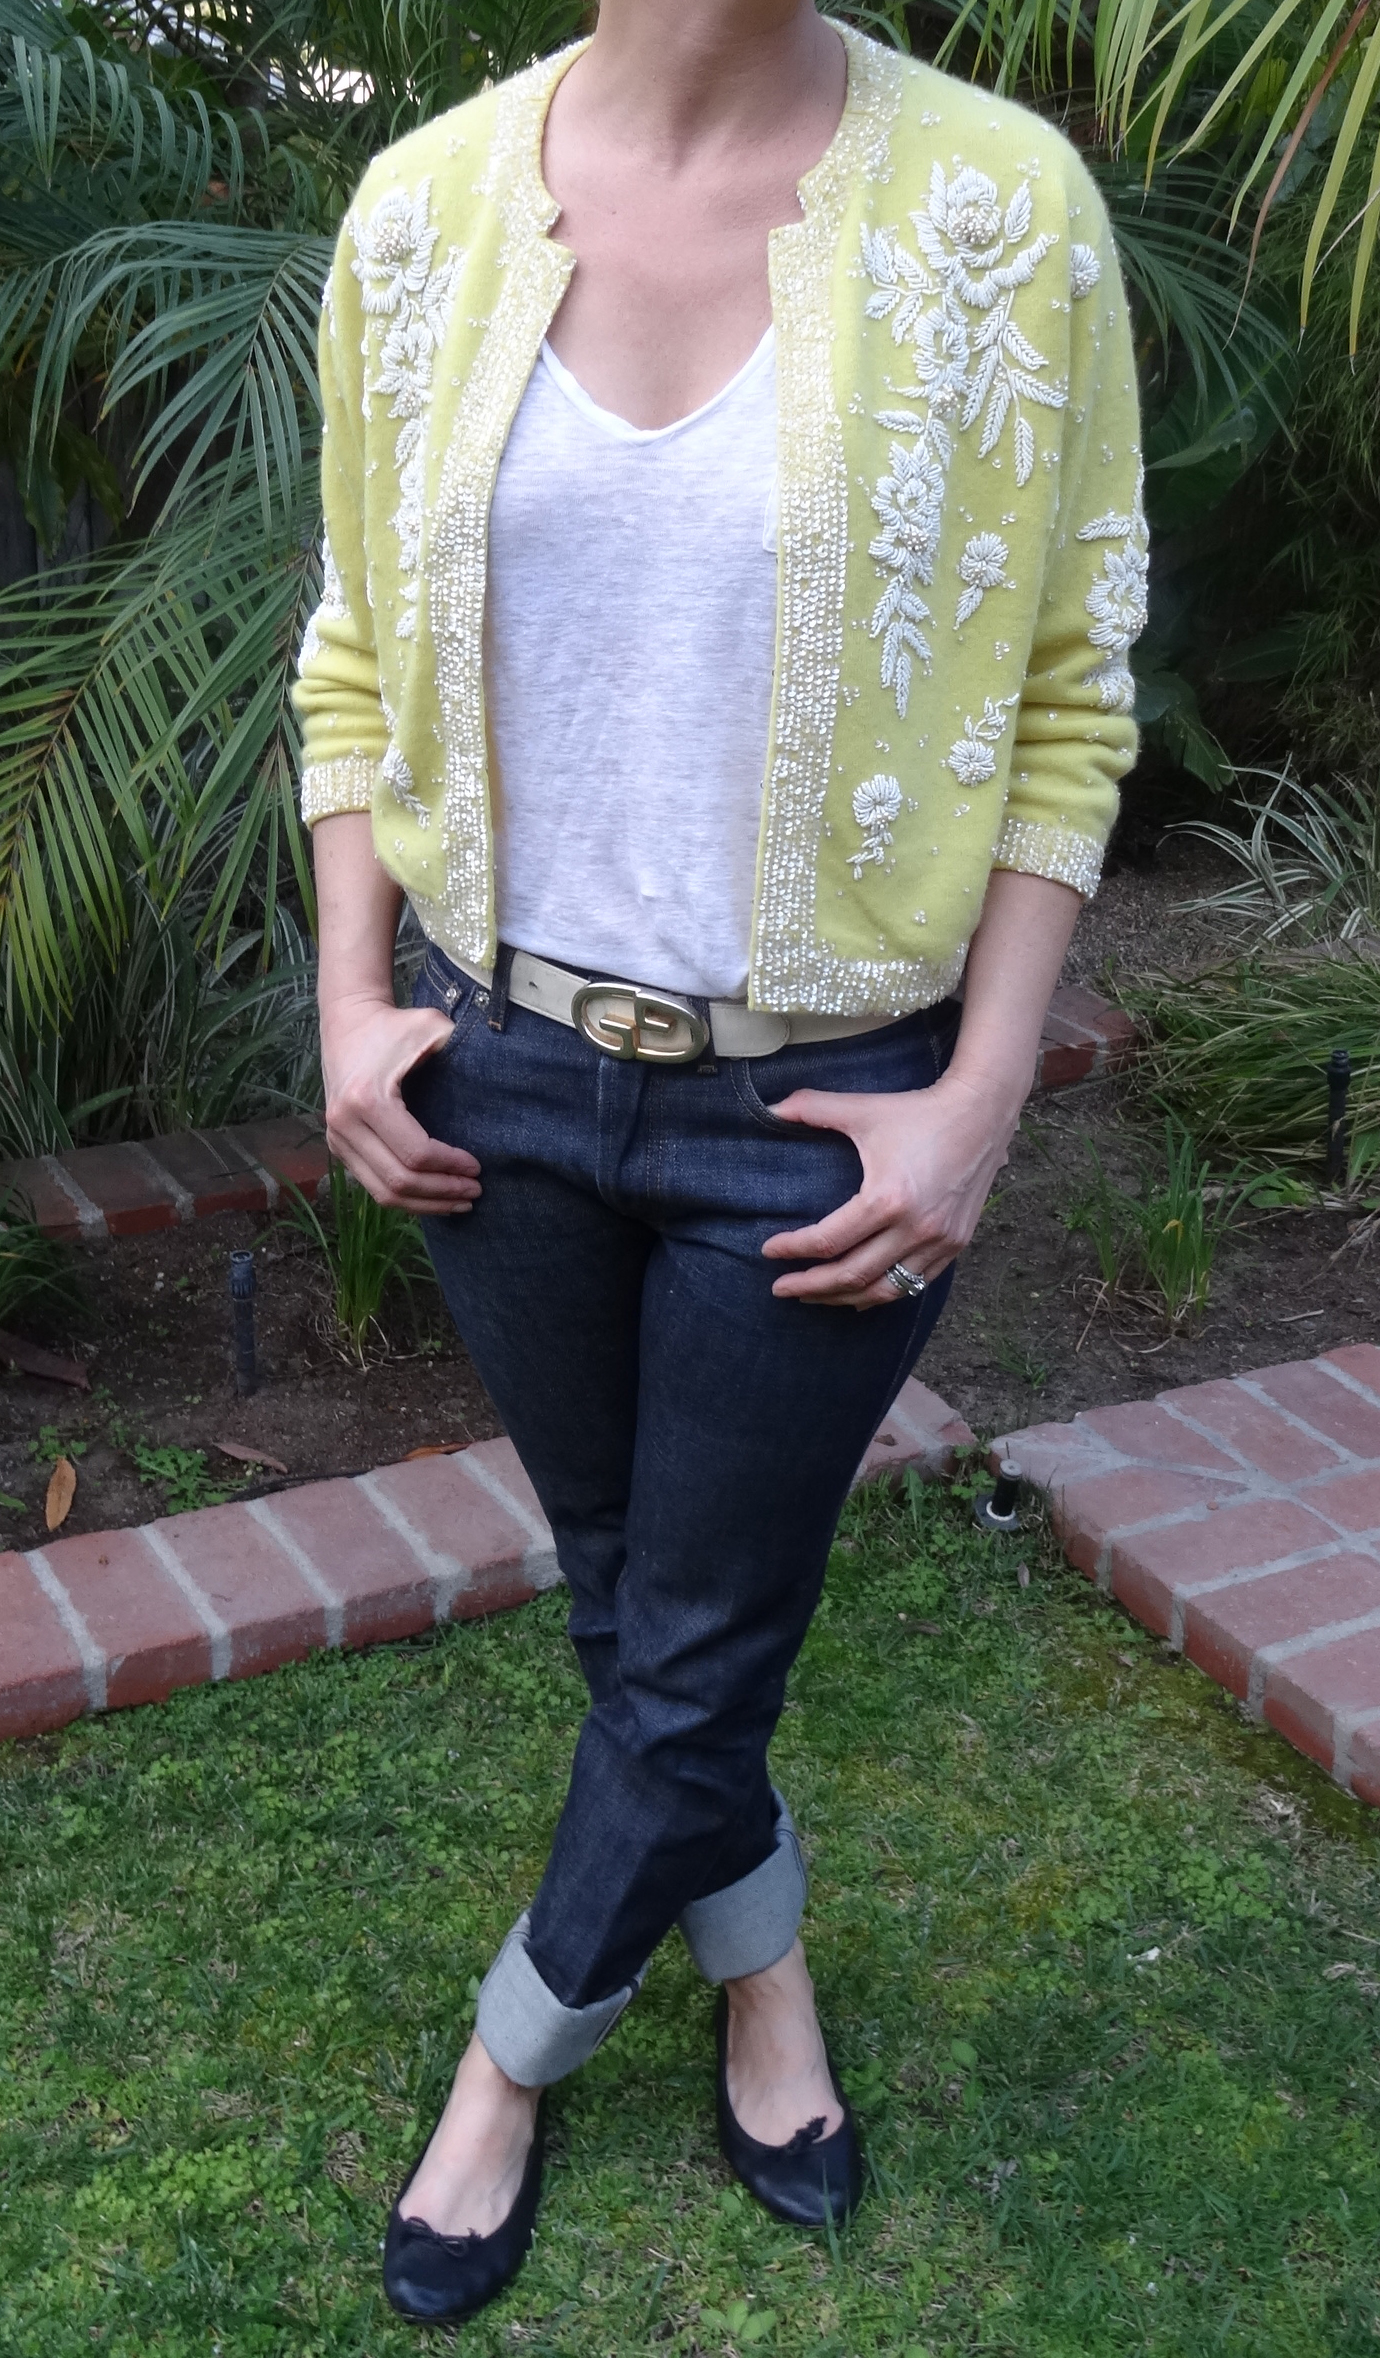 Vintage yellow beaded cashmere sweater, Gucci Belt, A.P.C Jeans, Repetto flats